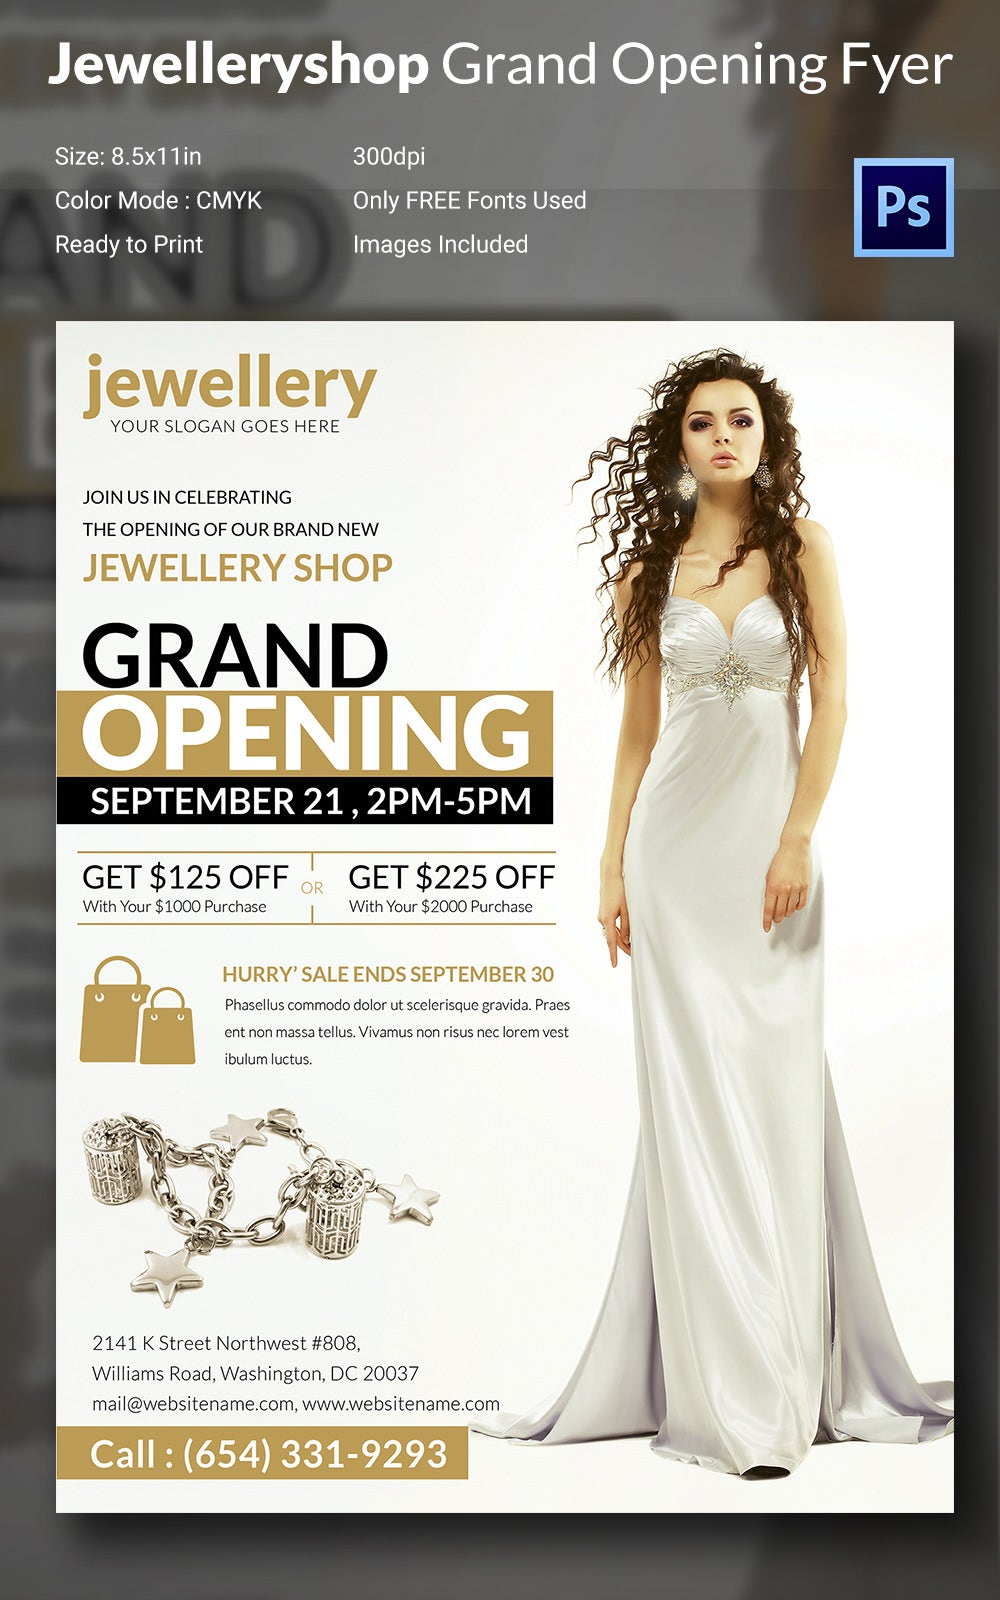 Jewellery Shop Grand Opening Flyer